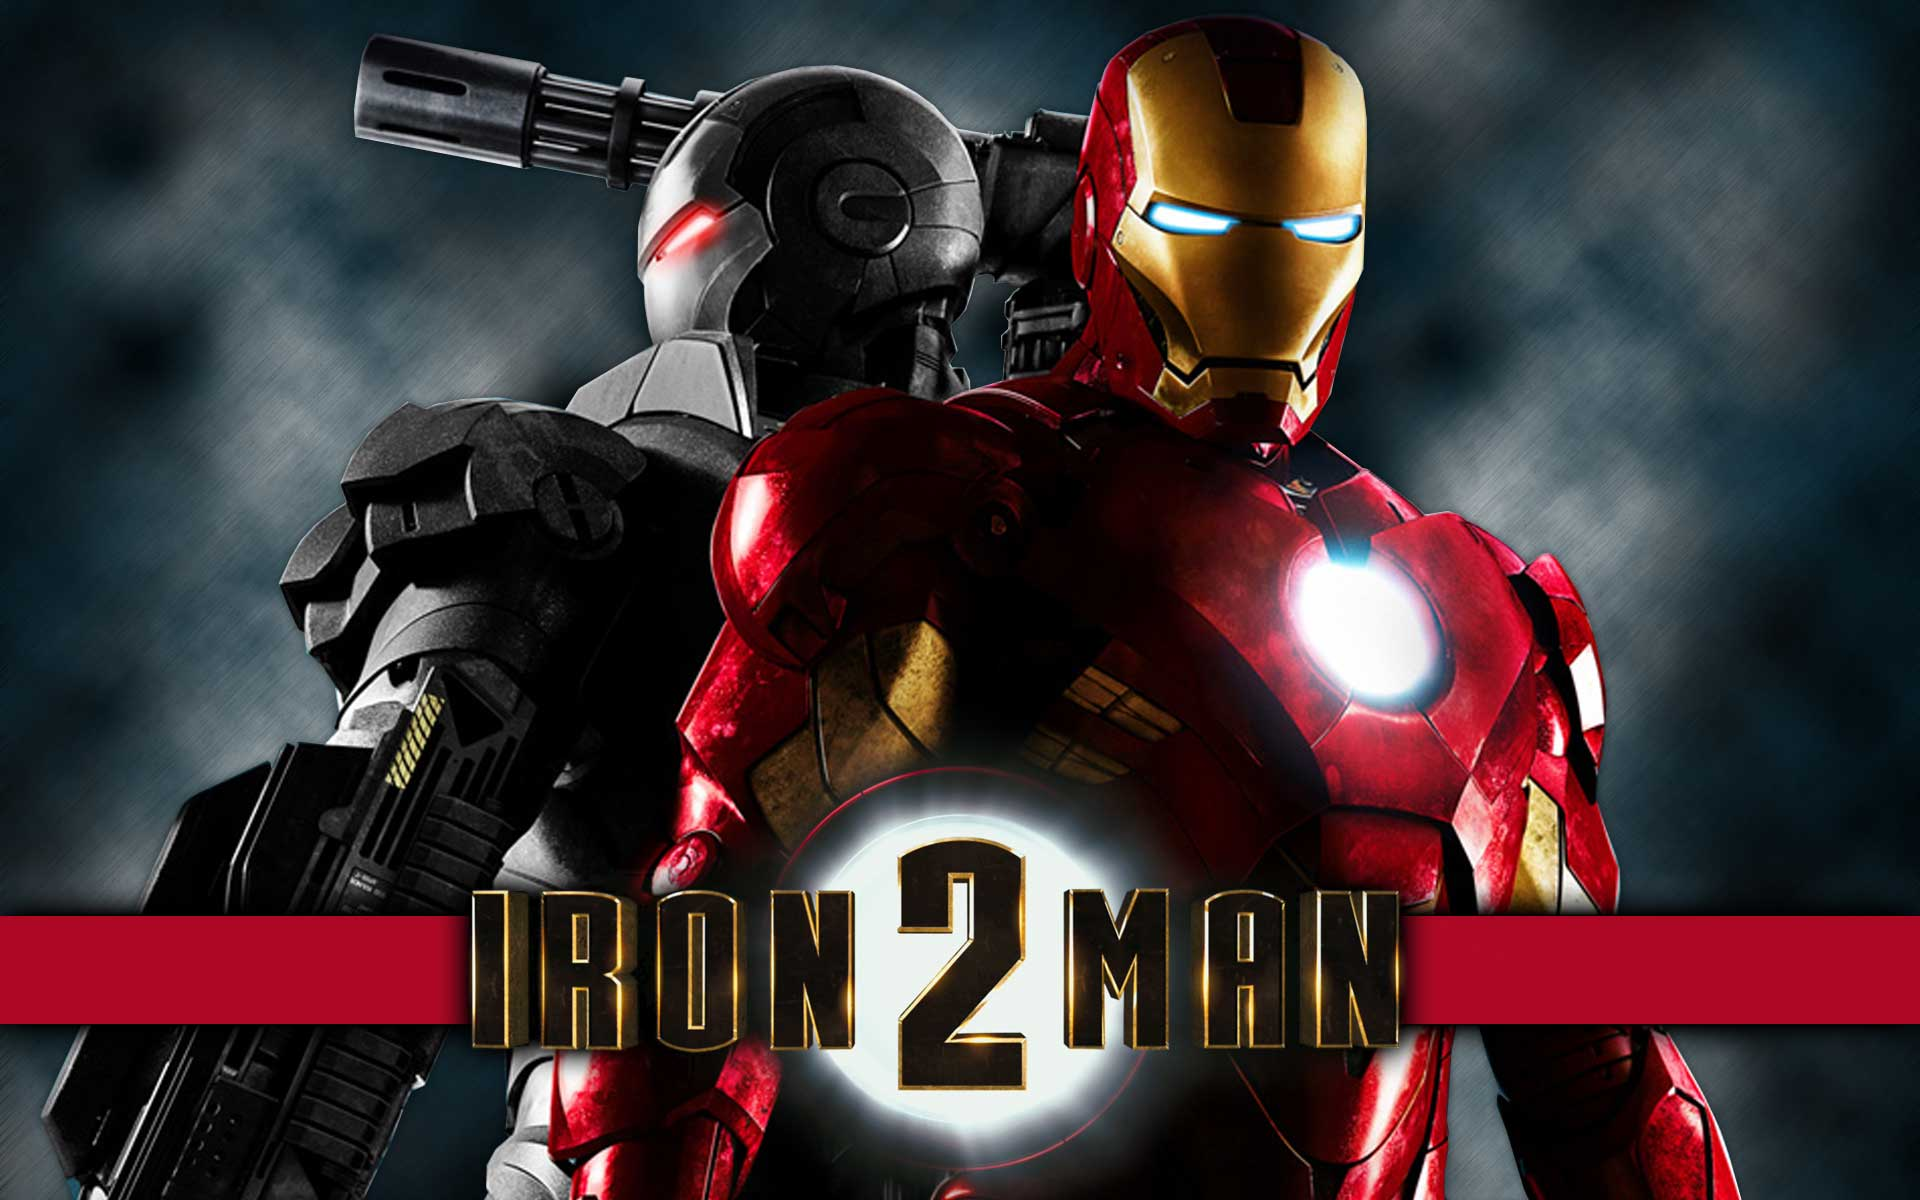 Iron Man 2 Wallpaper HD